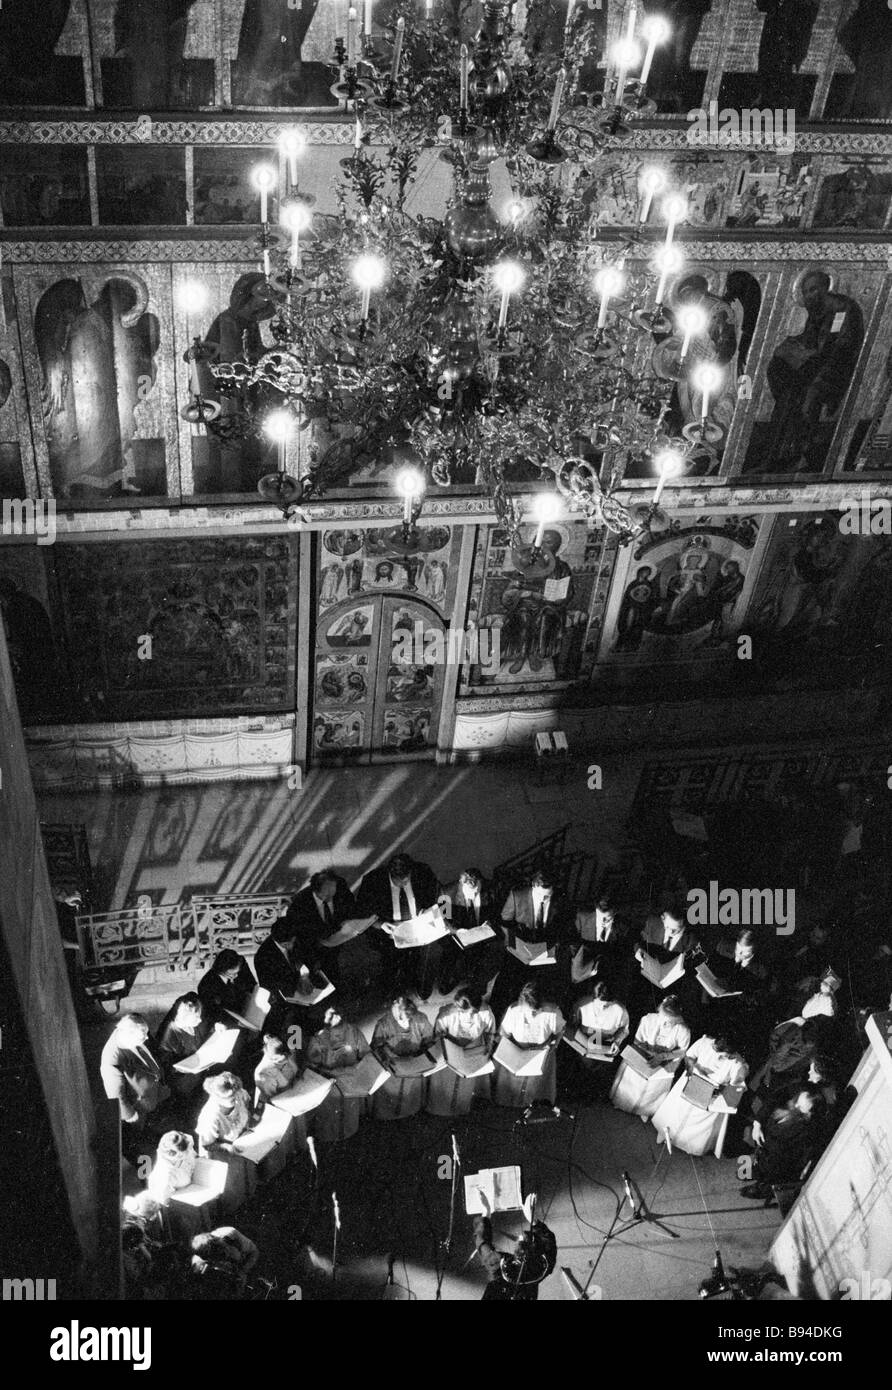 Choir of the Moscow Patriarchate singing in a church during Days of Slavic Culture and Alphabet in Novgorod - Stock Image